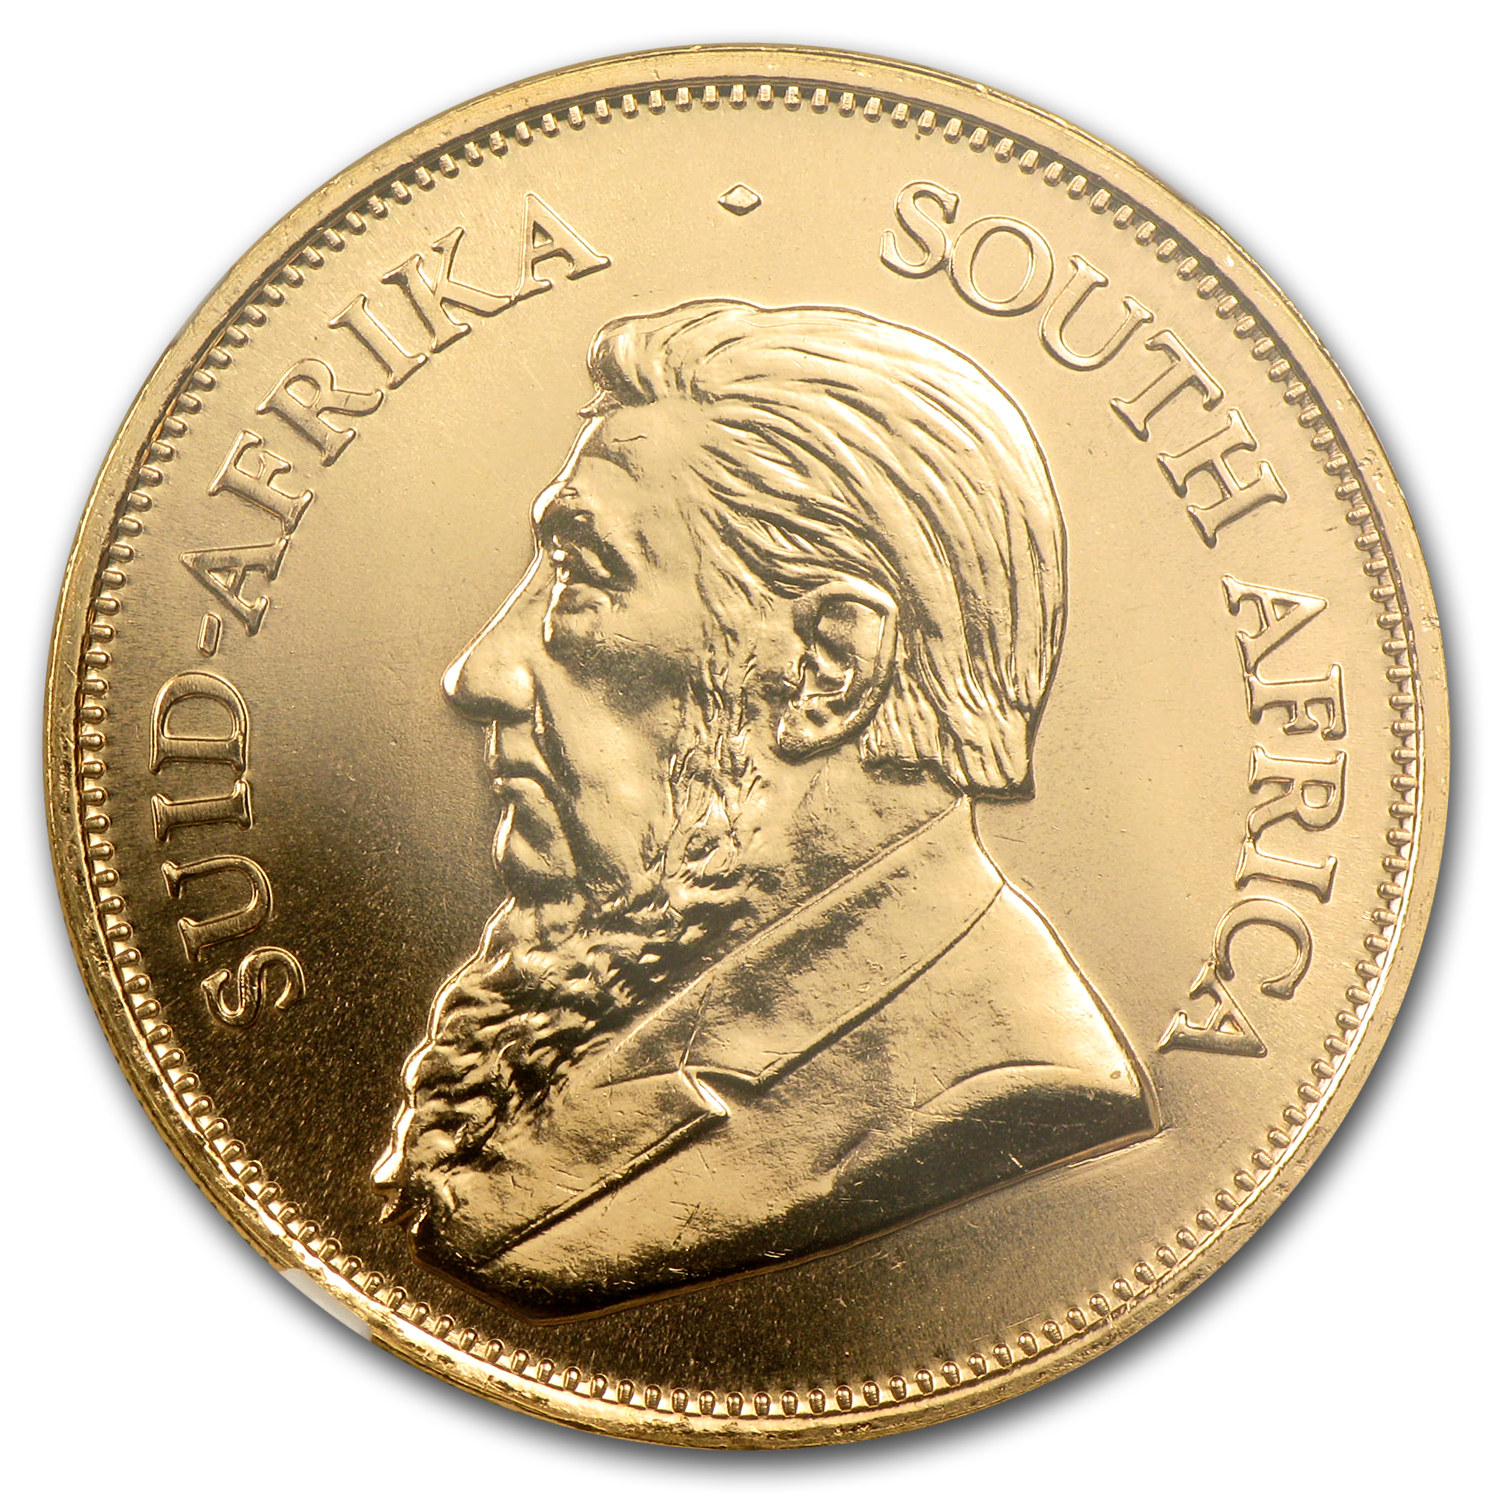 2002 South Africa 1 oz Gold Krugerrand MS-65 NGC